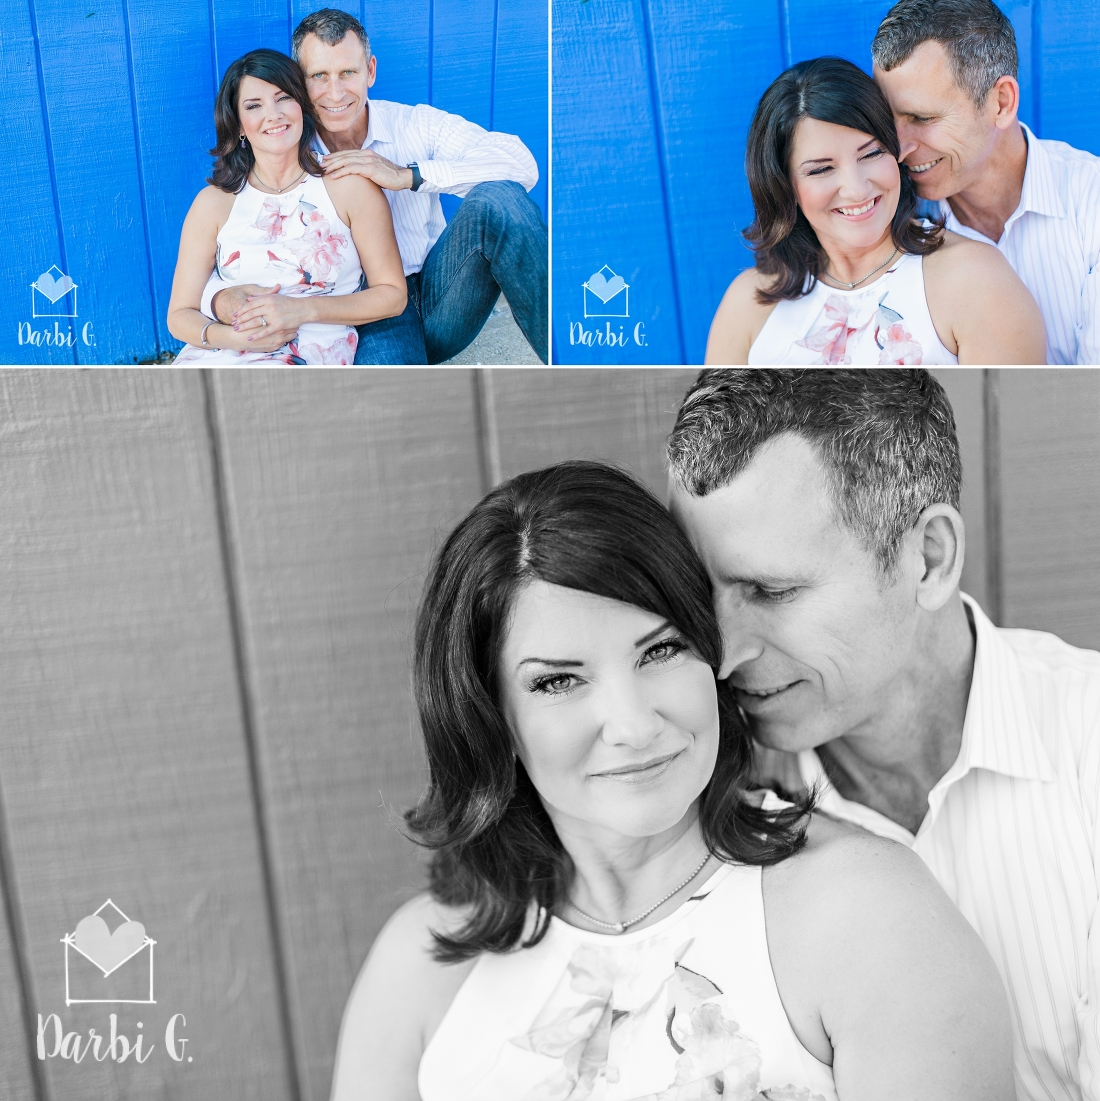 urban engagement session in the crossroads with kansas city photographer Darbi G.